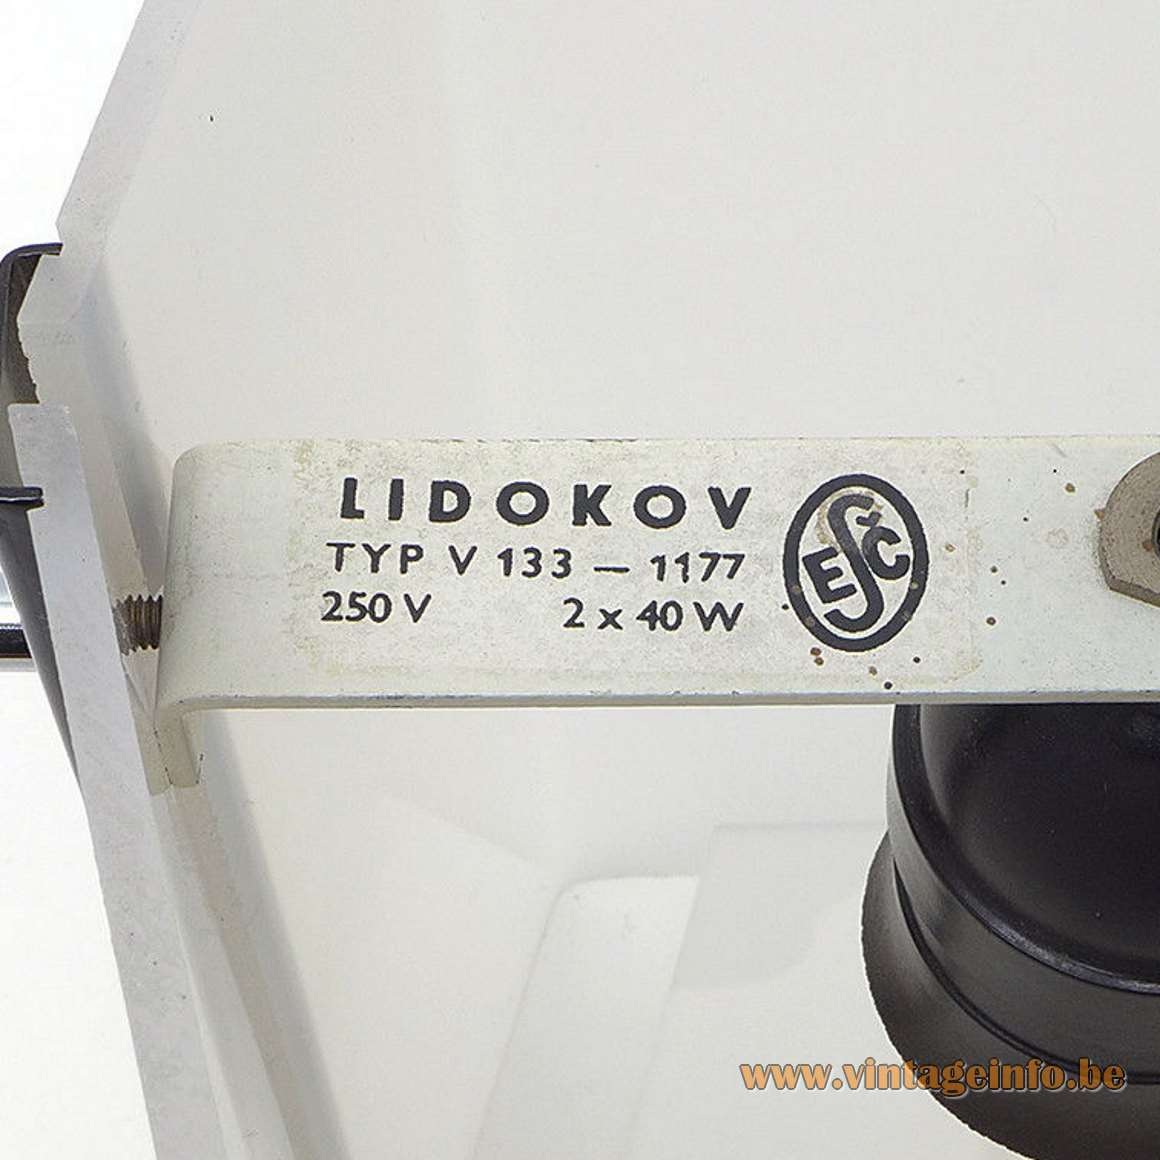 Lidokov Acrylic Pendant Lamp –Vintage Info – All About ...